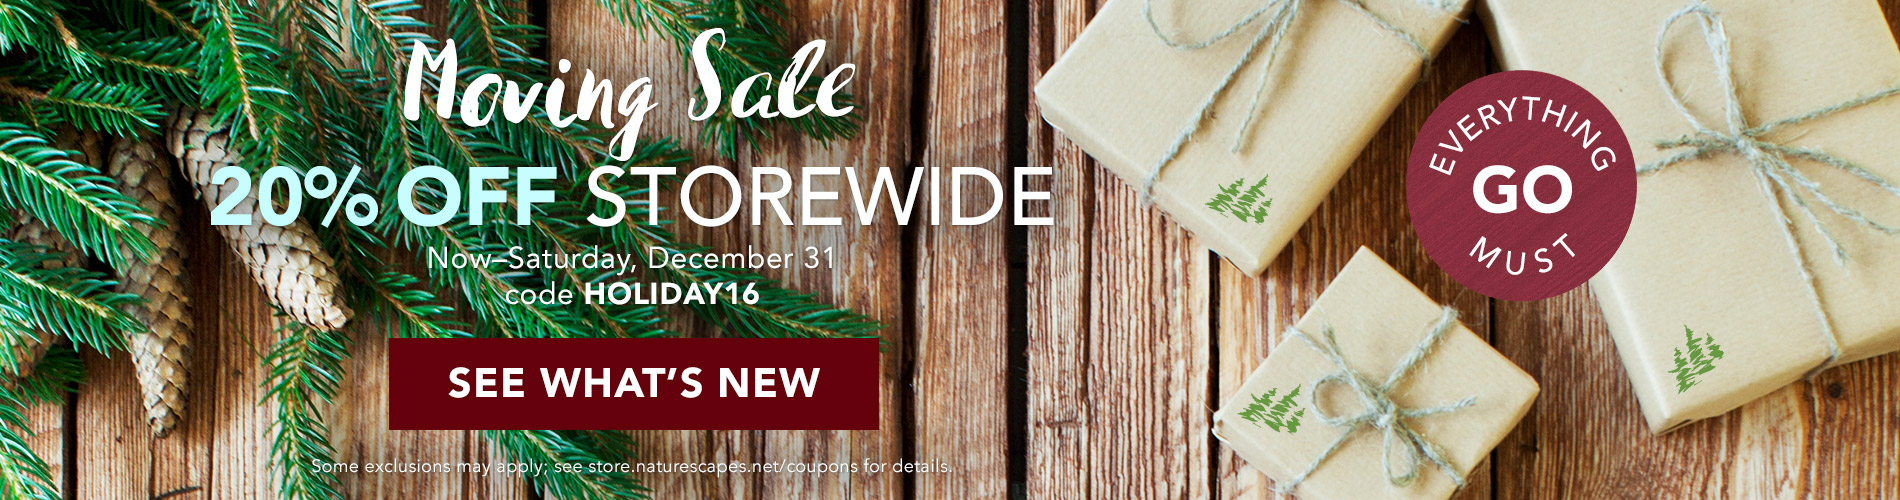 Everything must go! Moving Sale: 20% OFF STOREWIDE! Now through Saturday, December 31 - code HOLIDAY16. Some exclusions may apply. See What's New